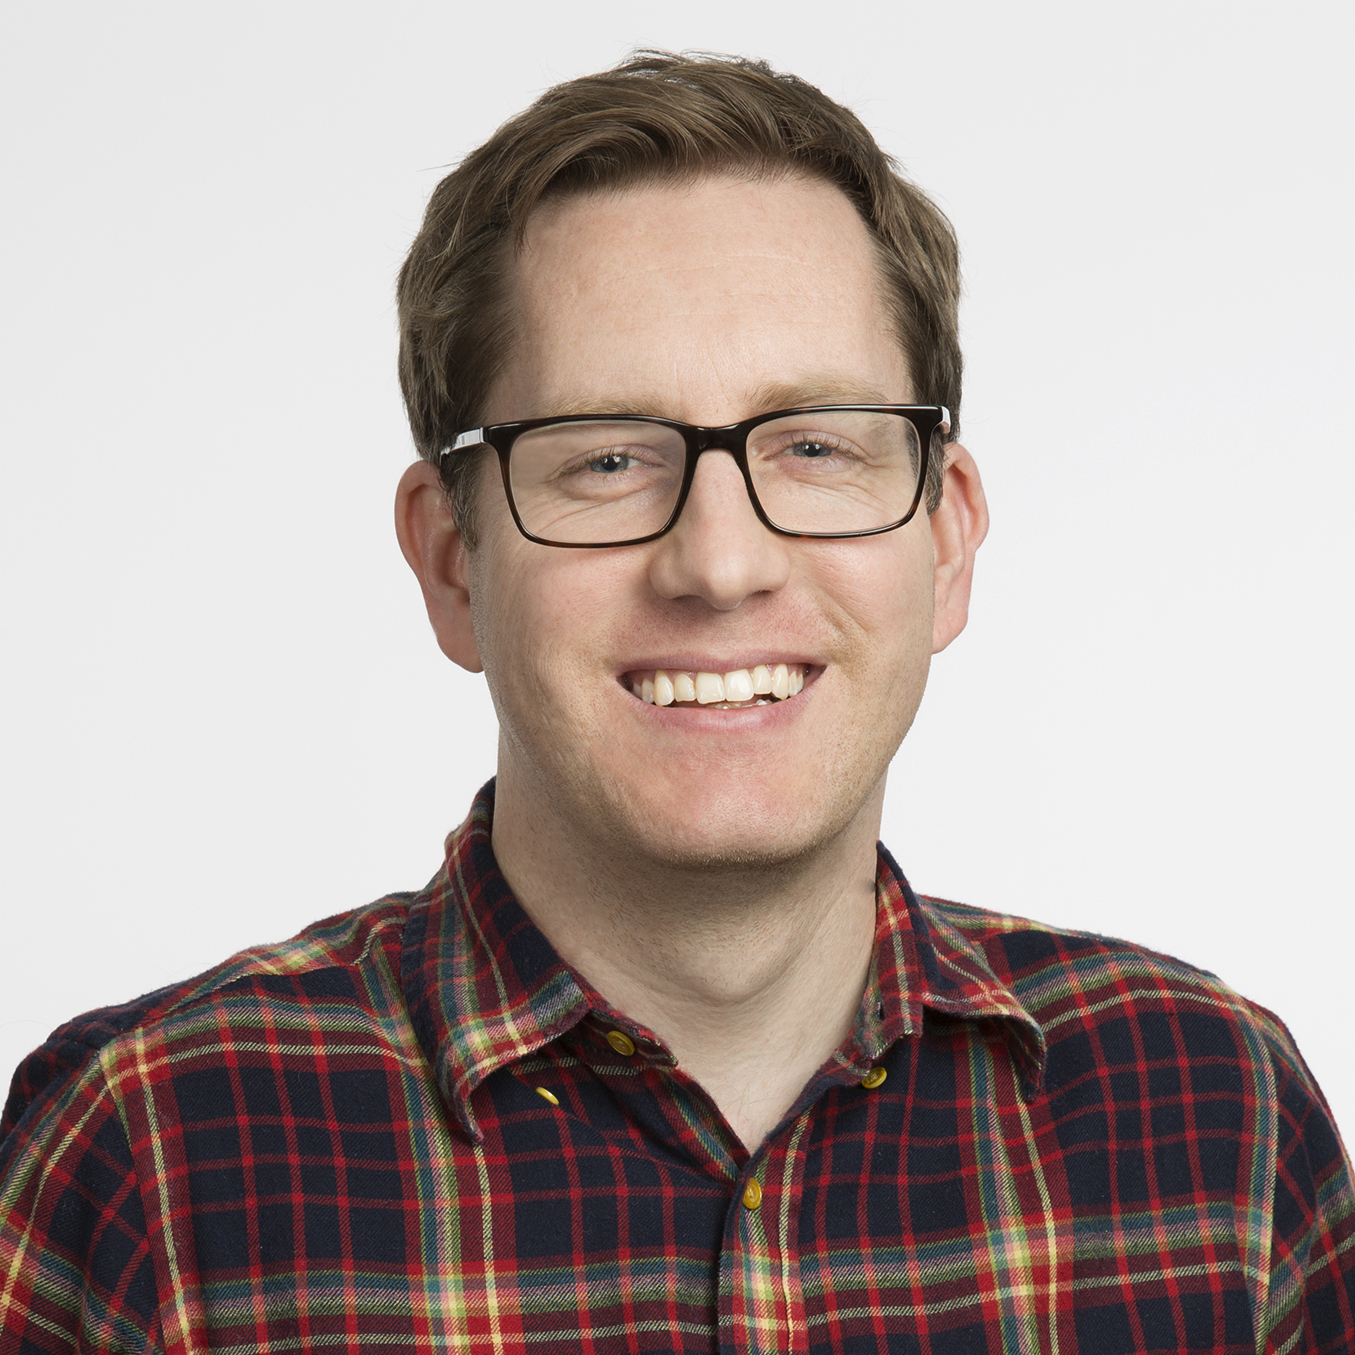 Rory Brown, President of Bleacher Report, will keynote the inaugural SVG Digital Summit.